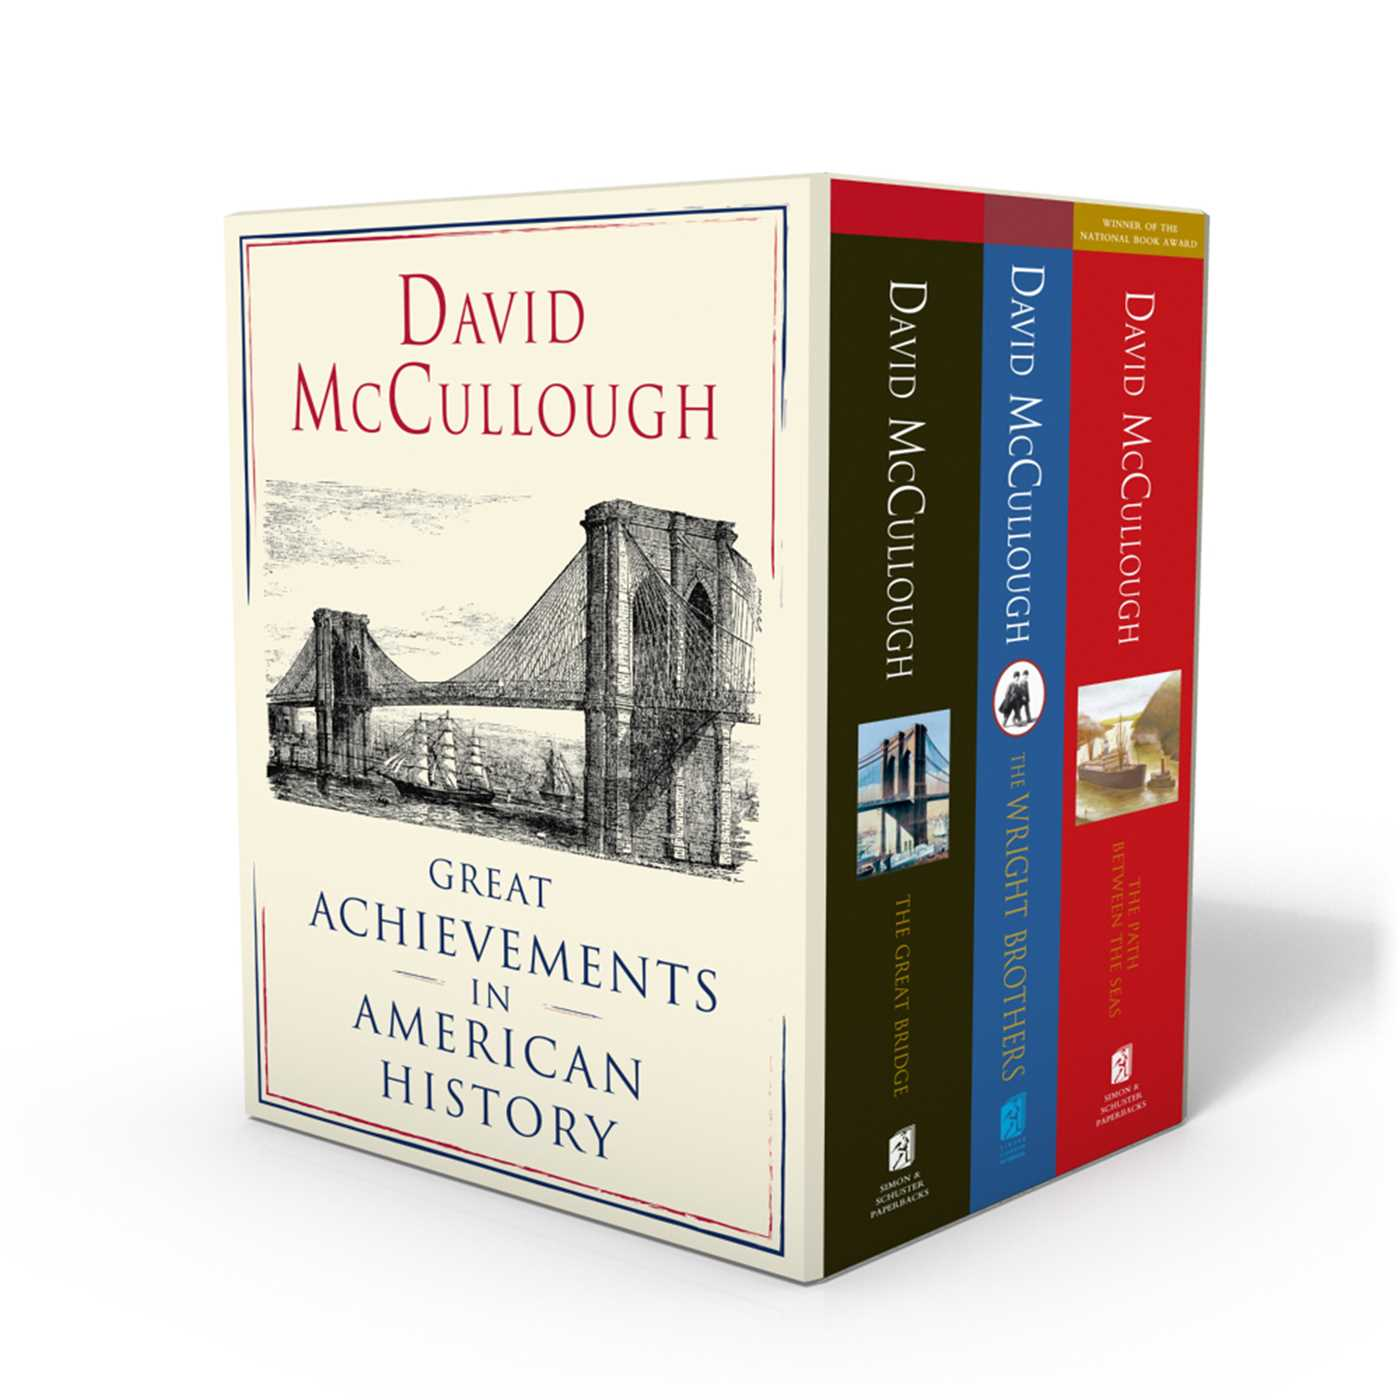 David mccullough great achievements in american history 9781501189074 hr